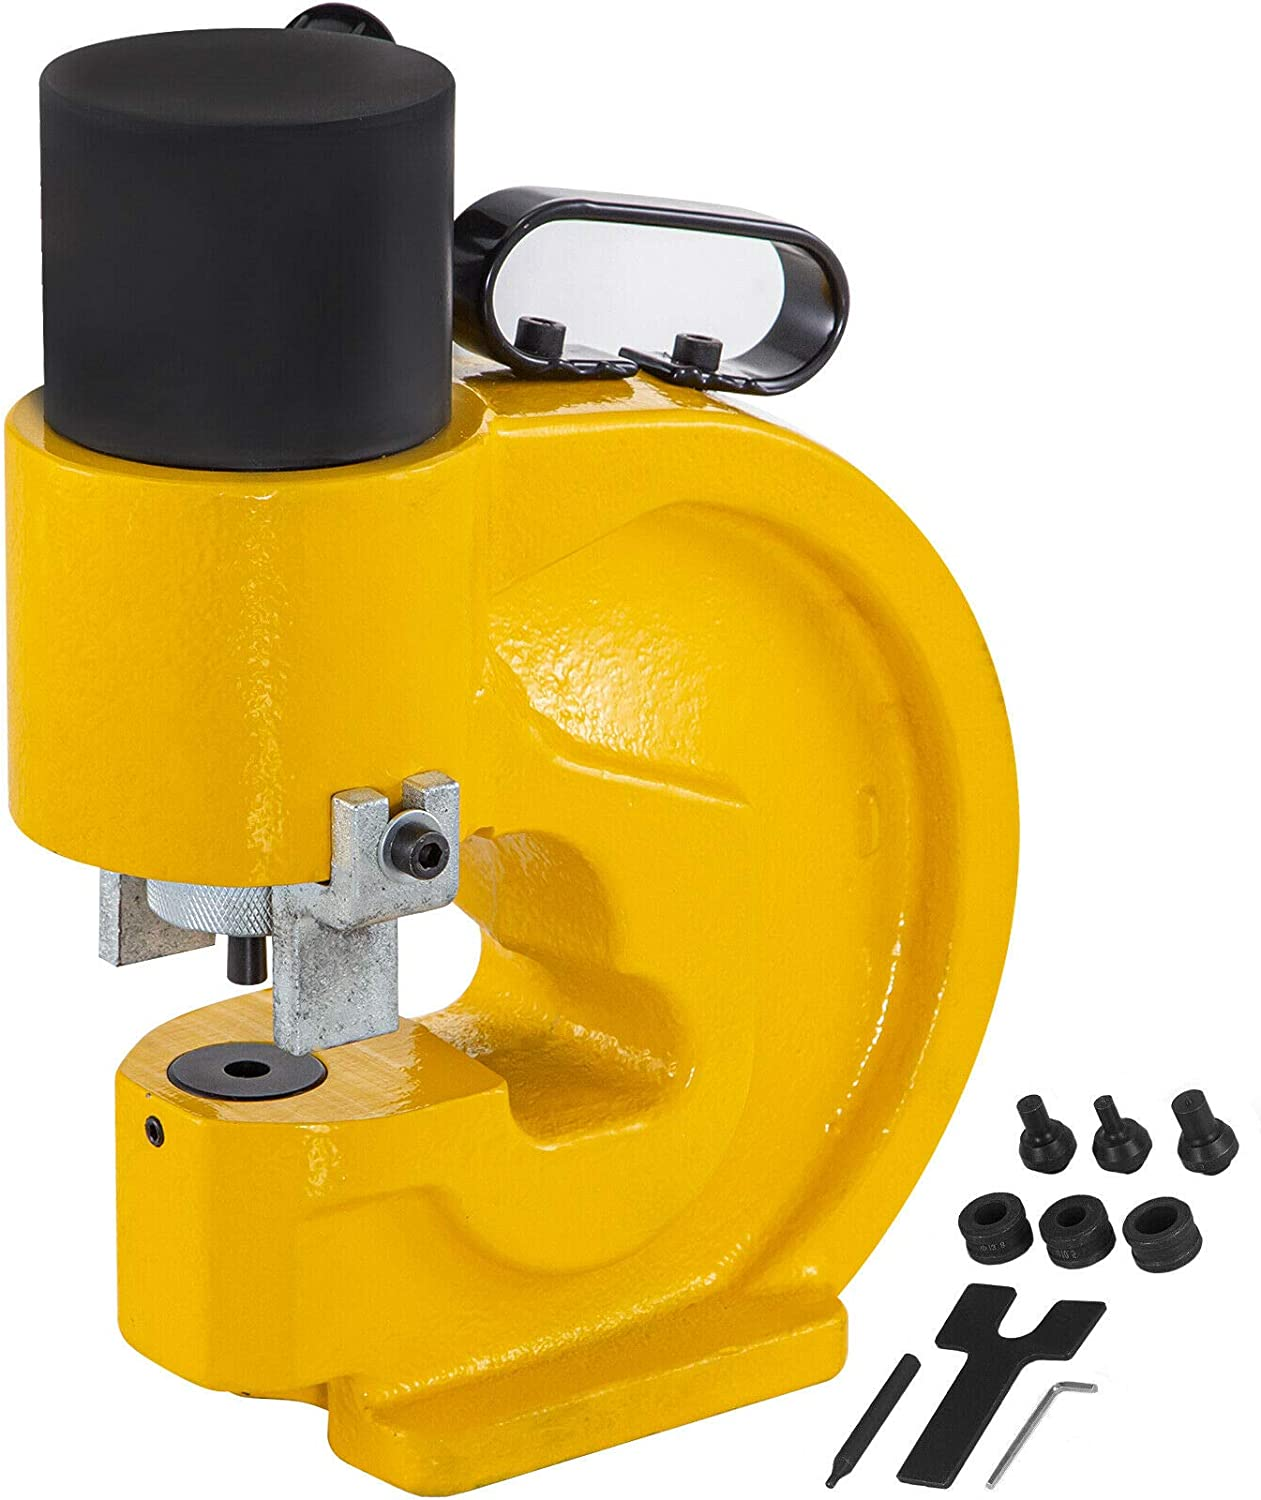 Happybuy CH-60 Hydraulic Hole Punching Tool 31T Hole Digger Force Puncher Smooth Hole Puncher For Iron Plate Copper Bar Aluminum Stainless Steel